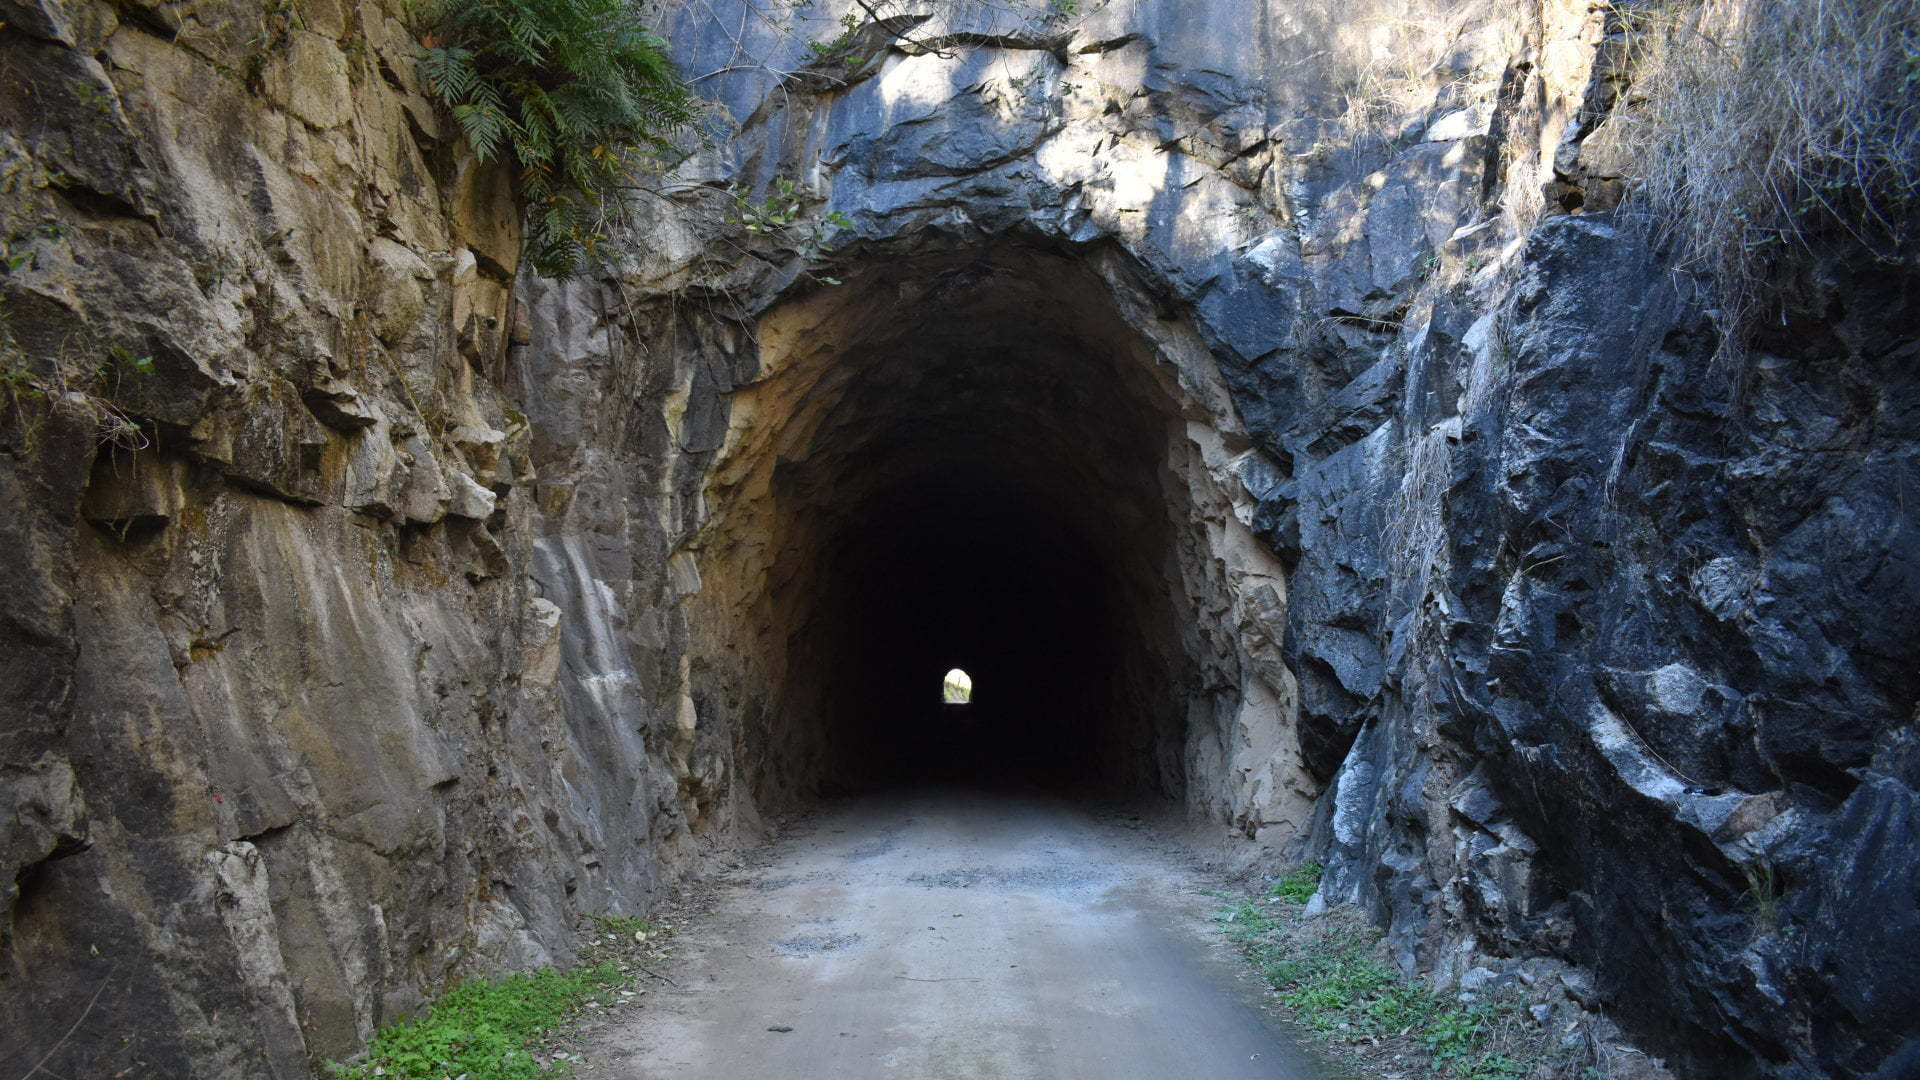 Entrance of a disused railway line tunnel, Boolboonda Tunnel is part of the Bundaberg to Mount Perry line